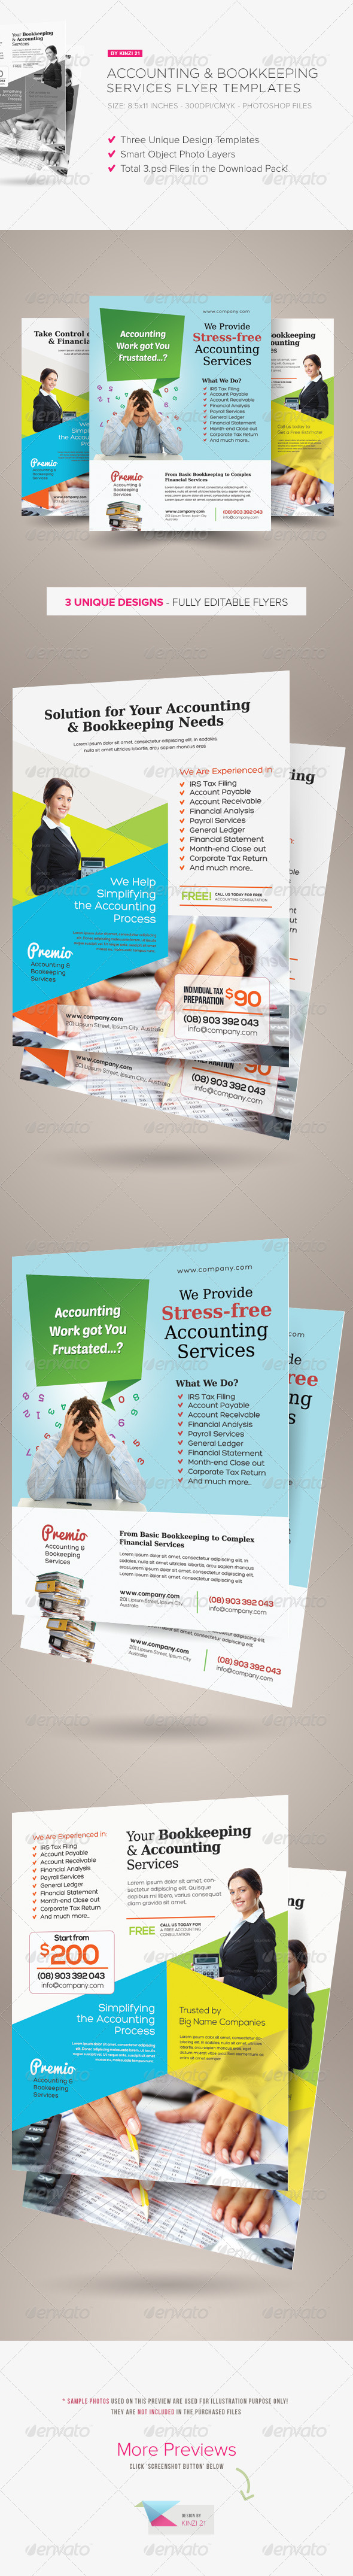 GraphicRiver Accounting and Bookkeeping Services Flyers 6516706